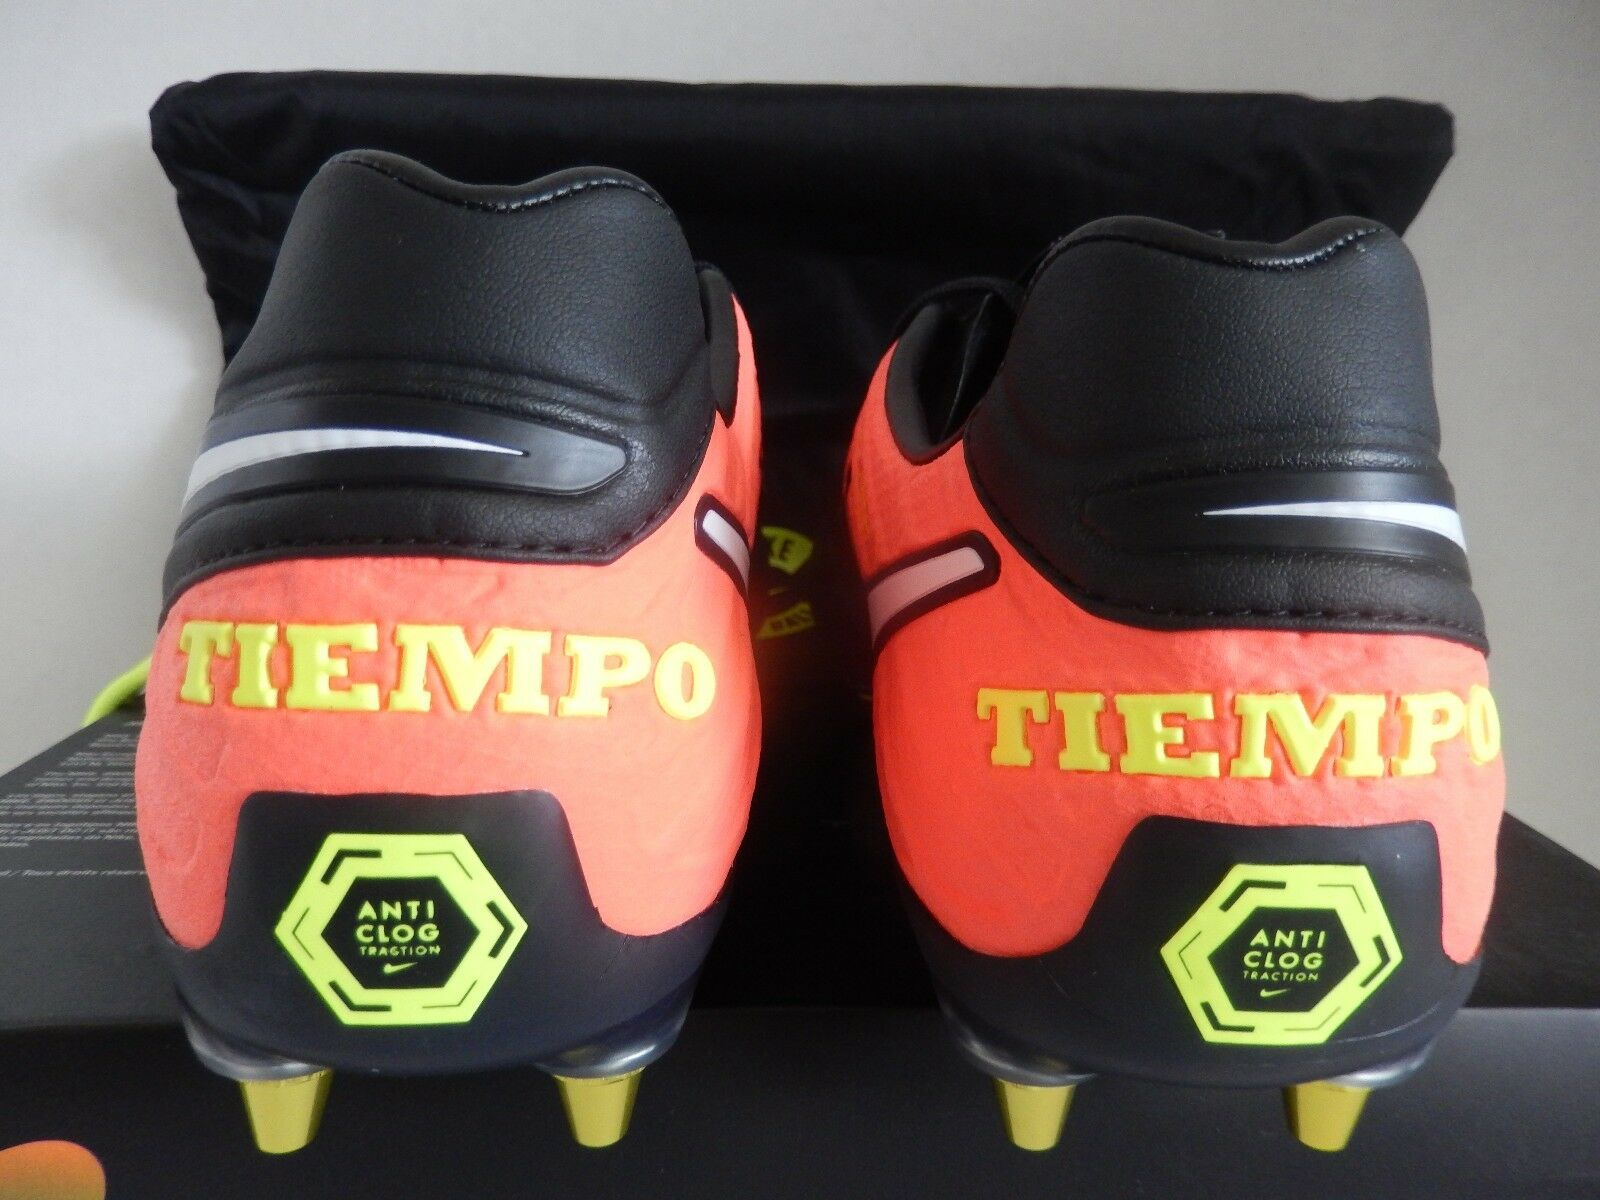 NIKE TIEMPO LEGEND PRO VI SG PRO LEGEND AC ANTI CLOG Noir -HYPER ORANGE SZ 8 d54114